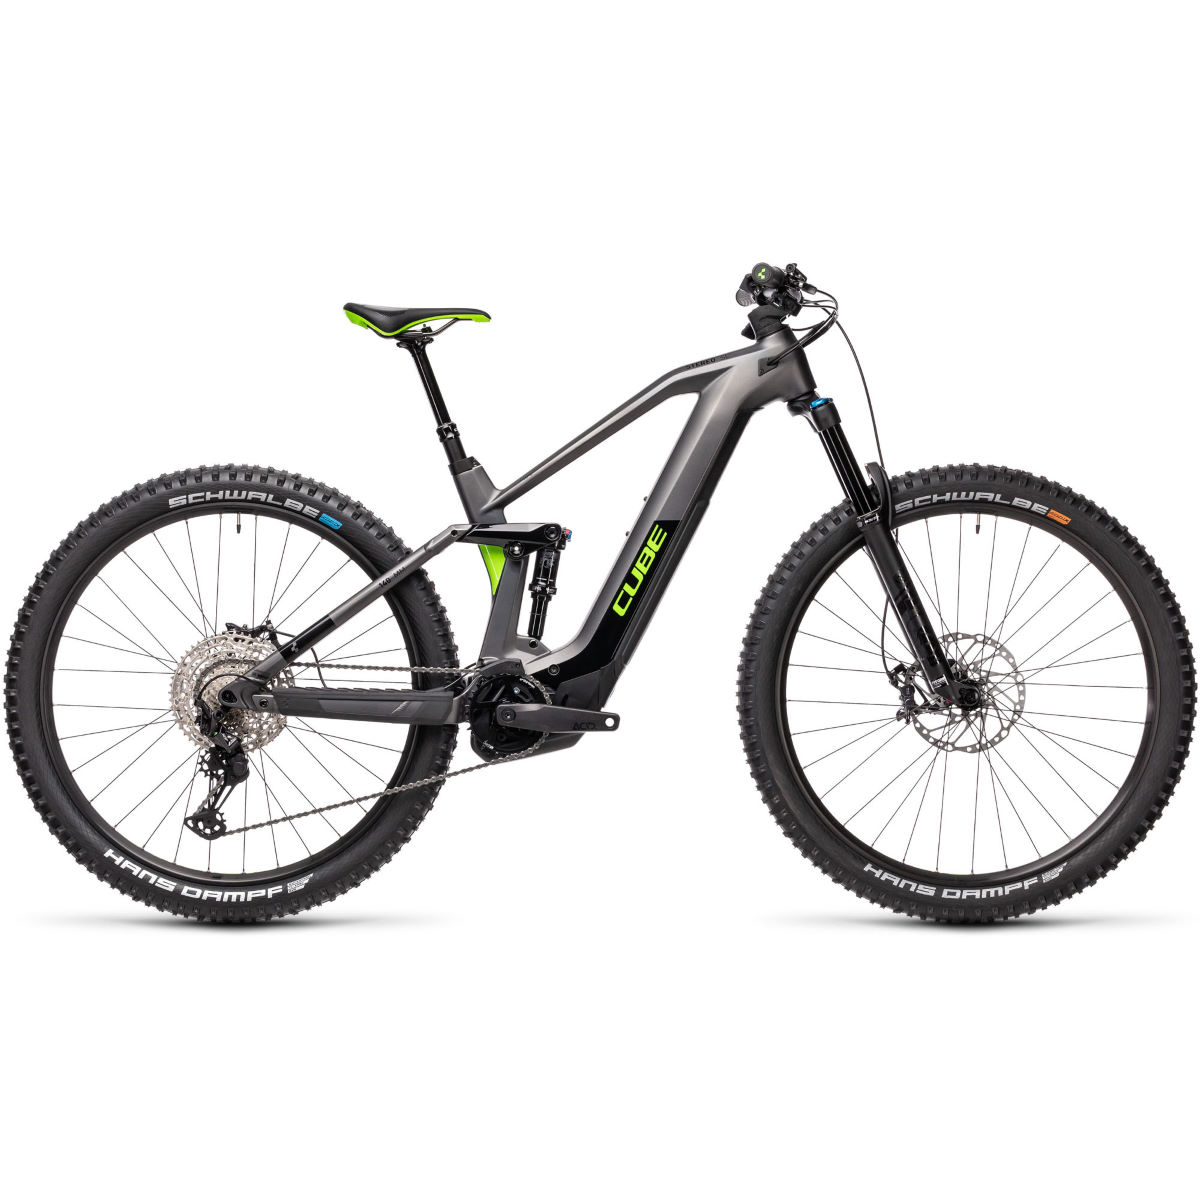 Cube Cube Stereo Hybrid 140 HPC SL 625 E-Bike (2021)   Electric Mountain Bikes